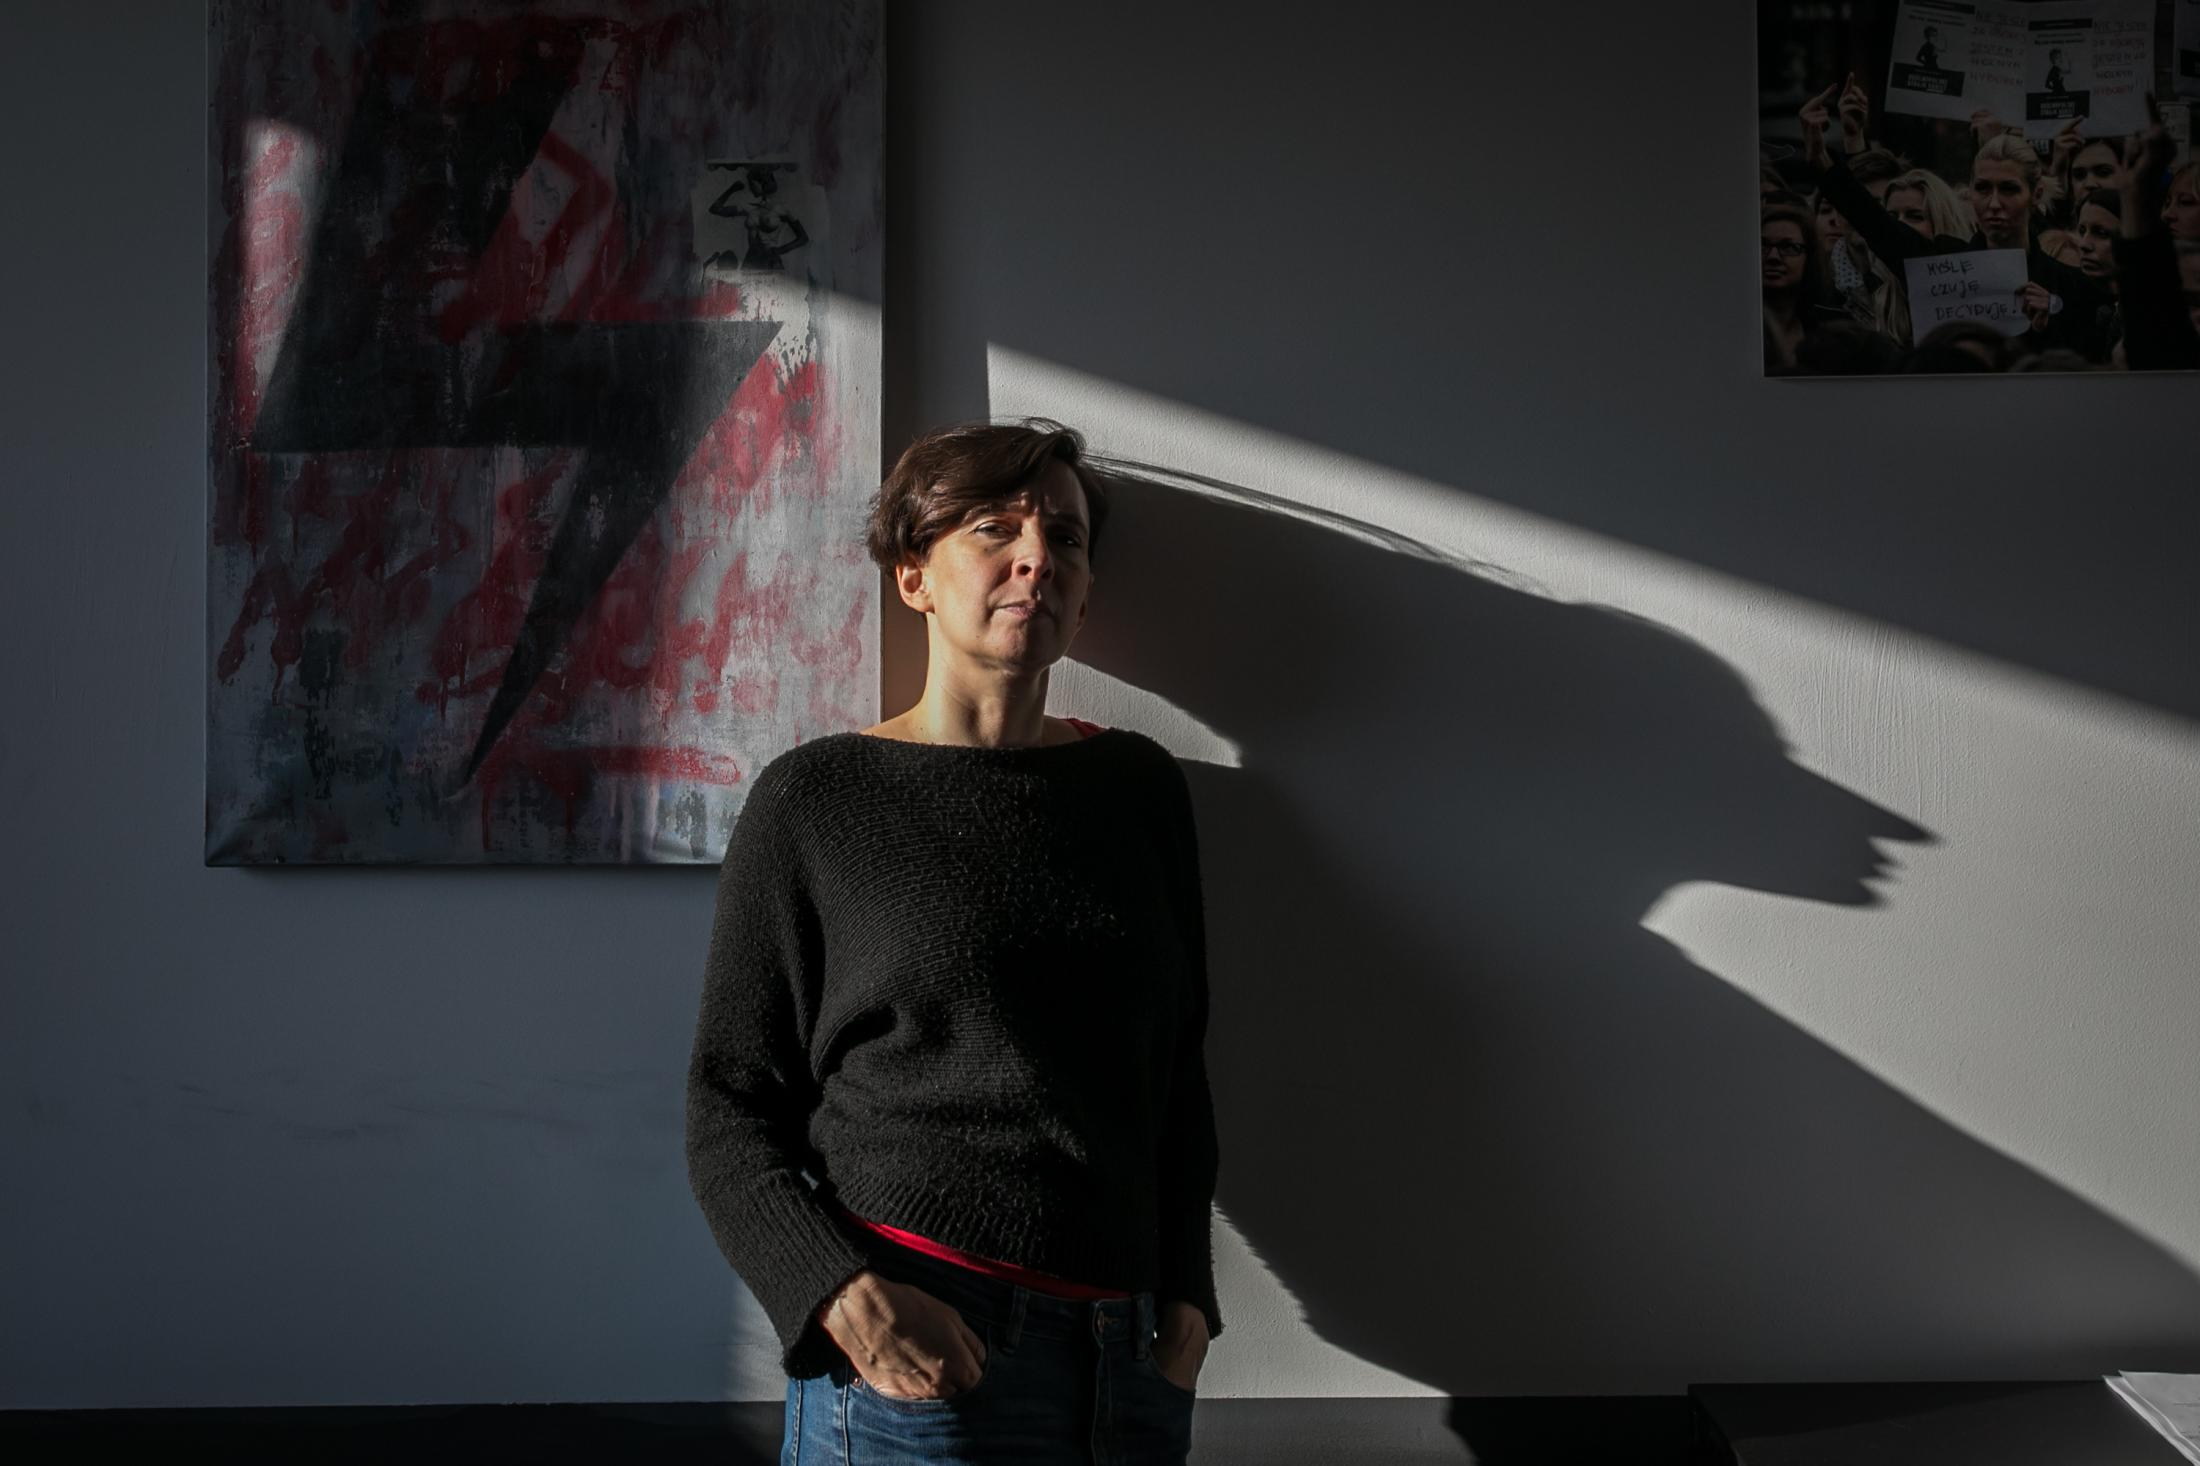 Klementyna Suchanow is one of the founders of All-Poland Women's Strike movement. Women's Strike Office in Warsaw, Poland.